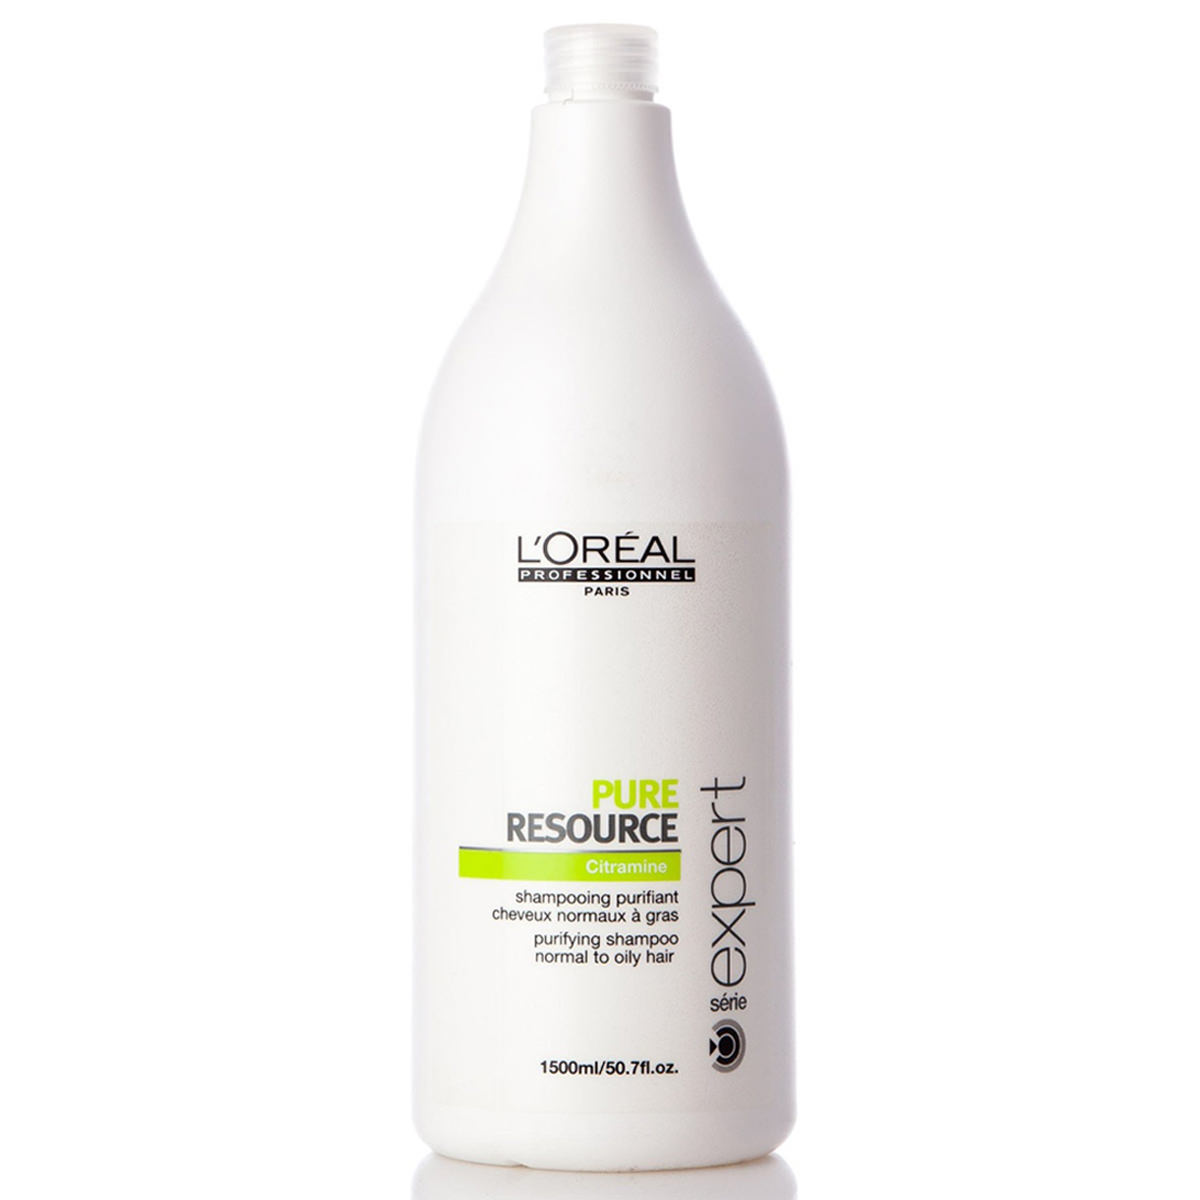 L'oreal-Professionnel-Scalp-Pure-Resource-Shampoo-(1500-ml)-sfw(1)